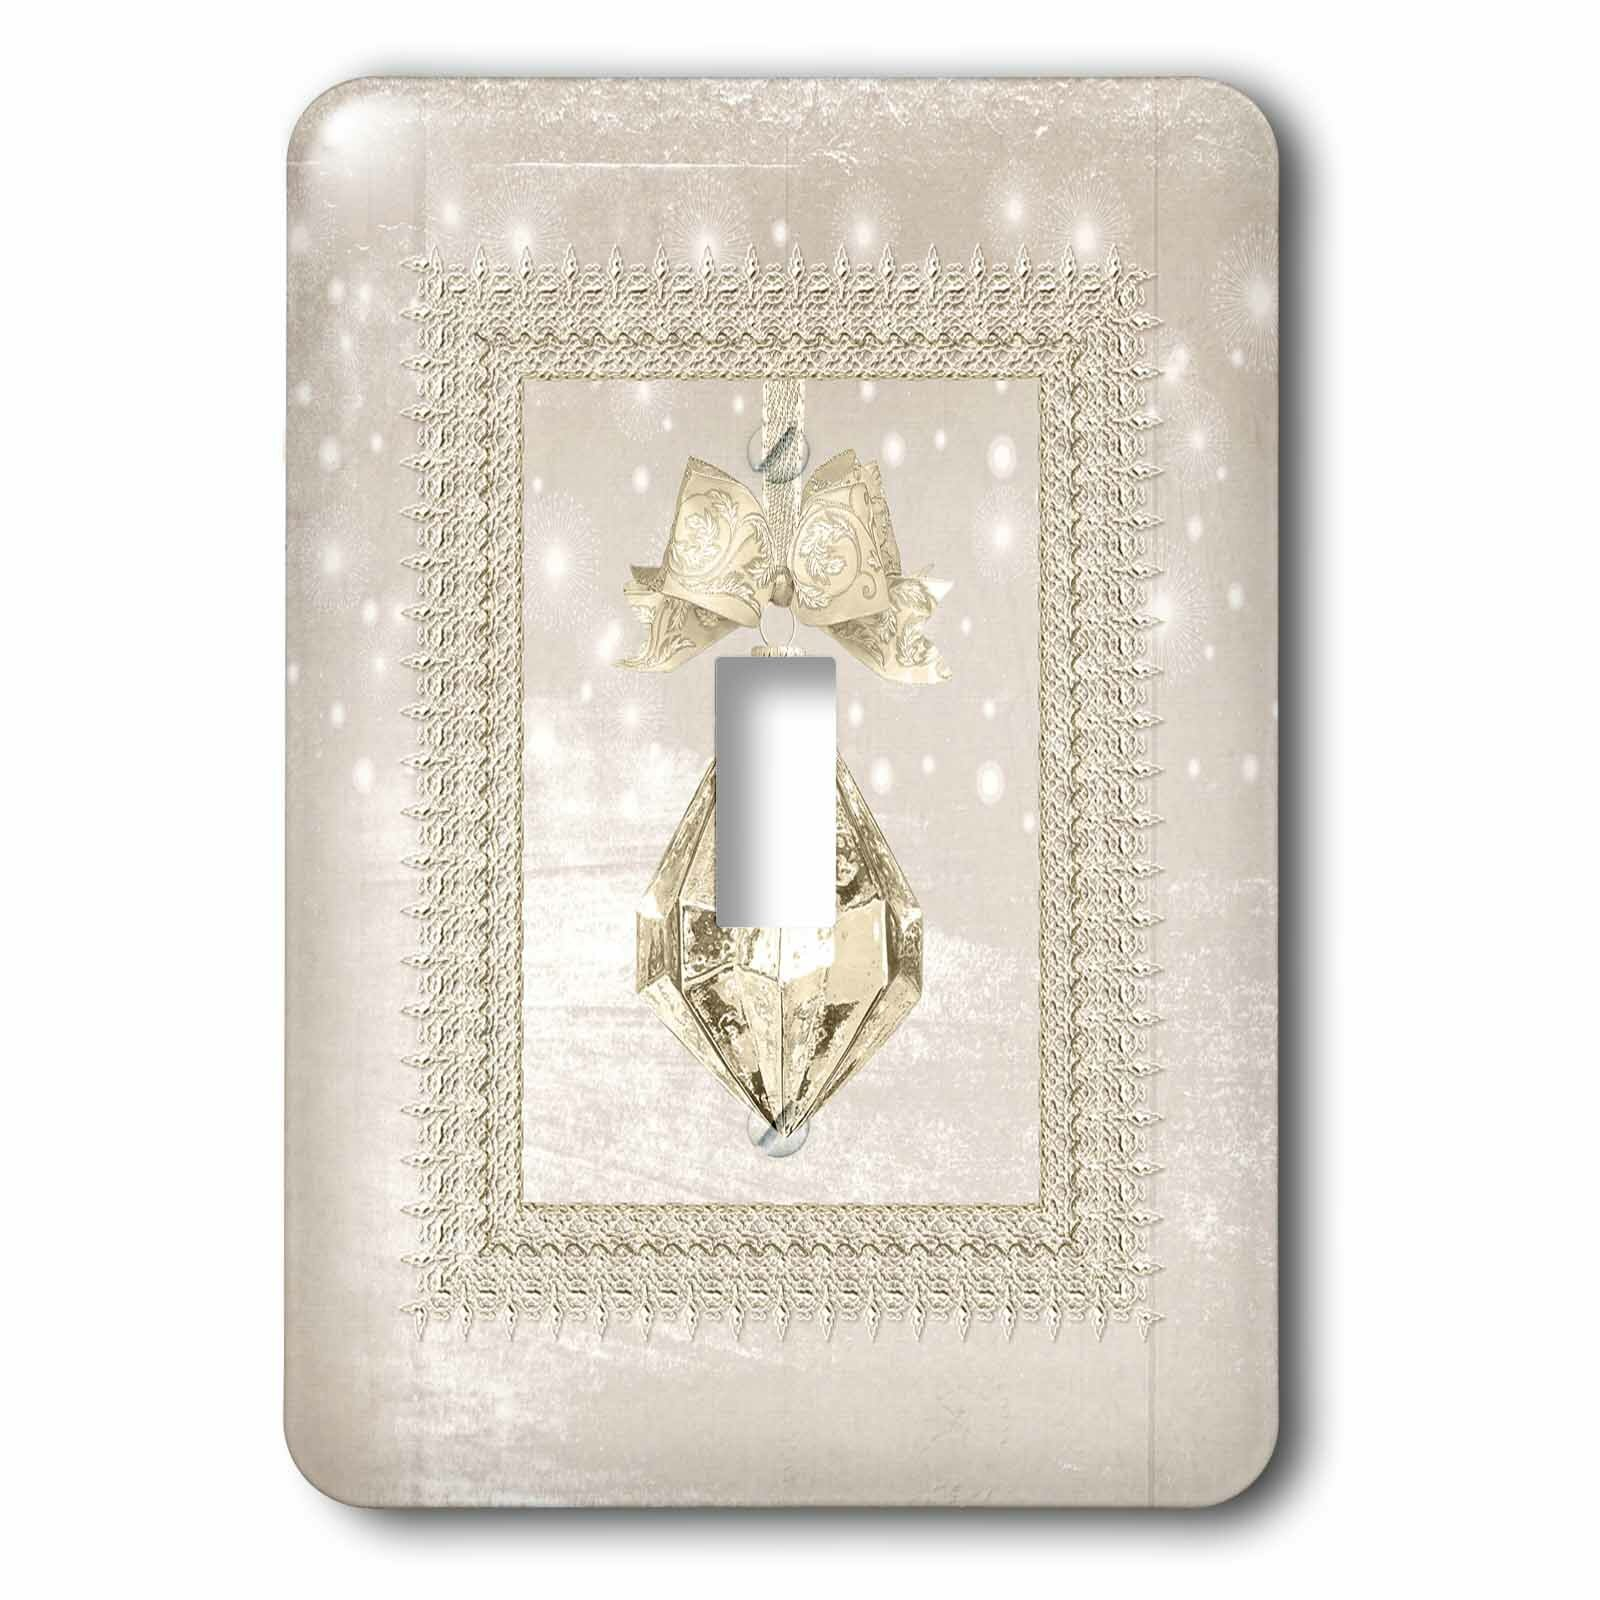 3drose Crystal Ornament 1 Gang Toggle Light Switch Wall Plate Wayfair